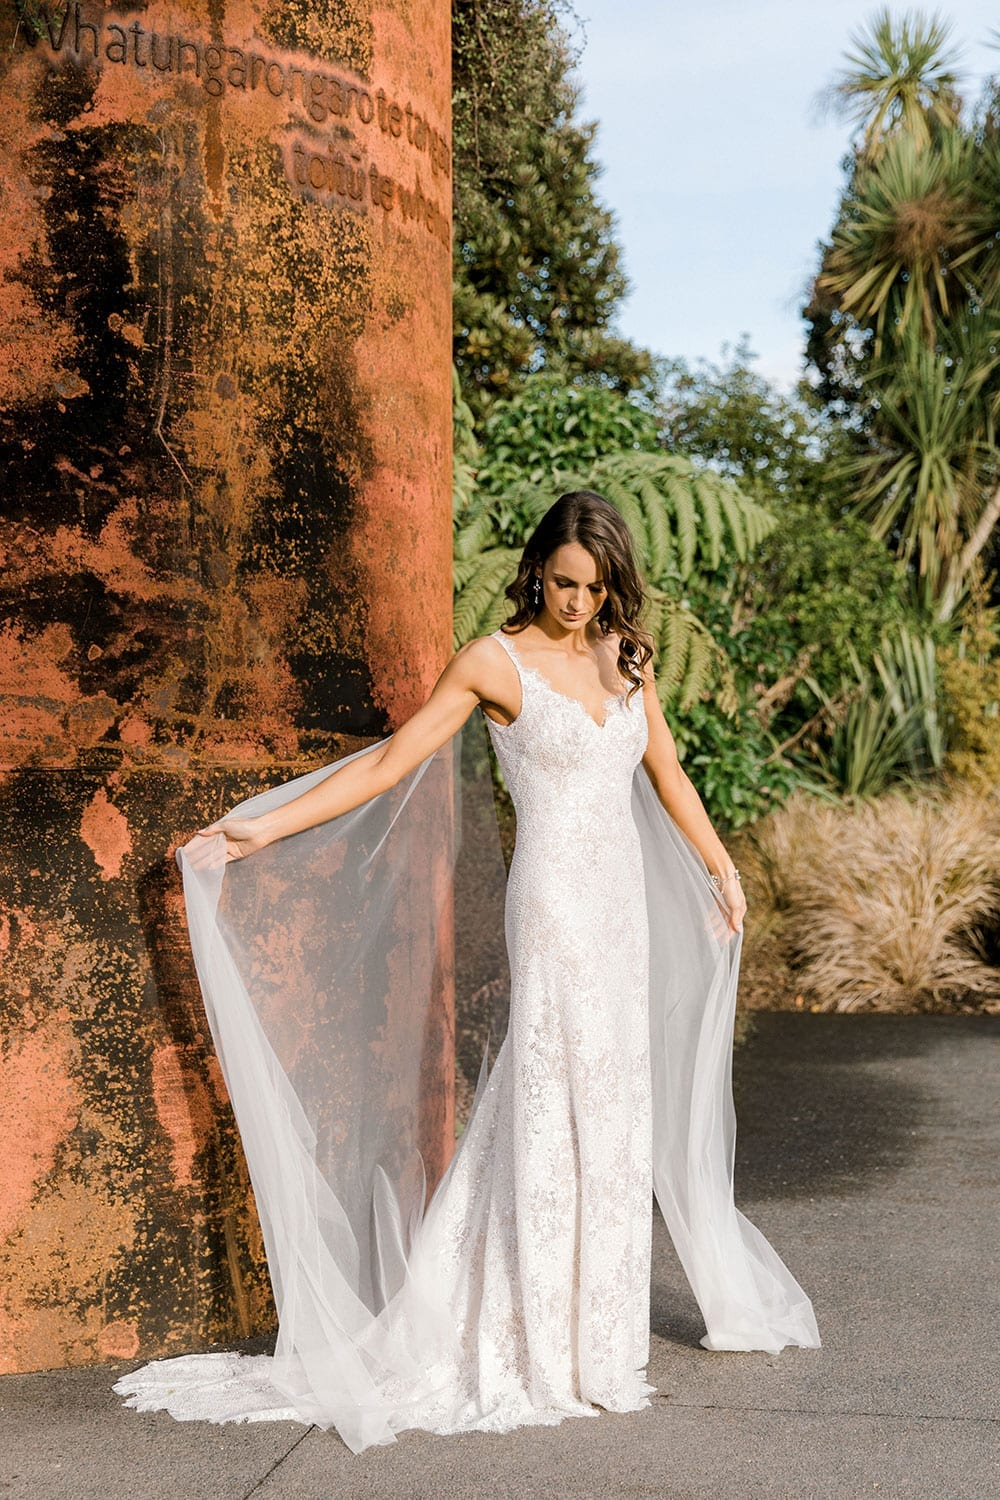 Model wearing Vinka Design Arabella Wedding Dress, a Beaded Lace Wedding Gown with Cape in Hamilton Gardens arms stretched displaying cape